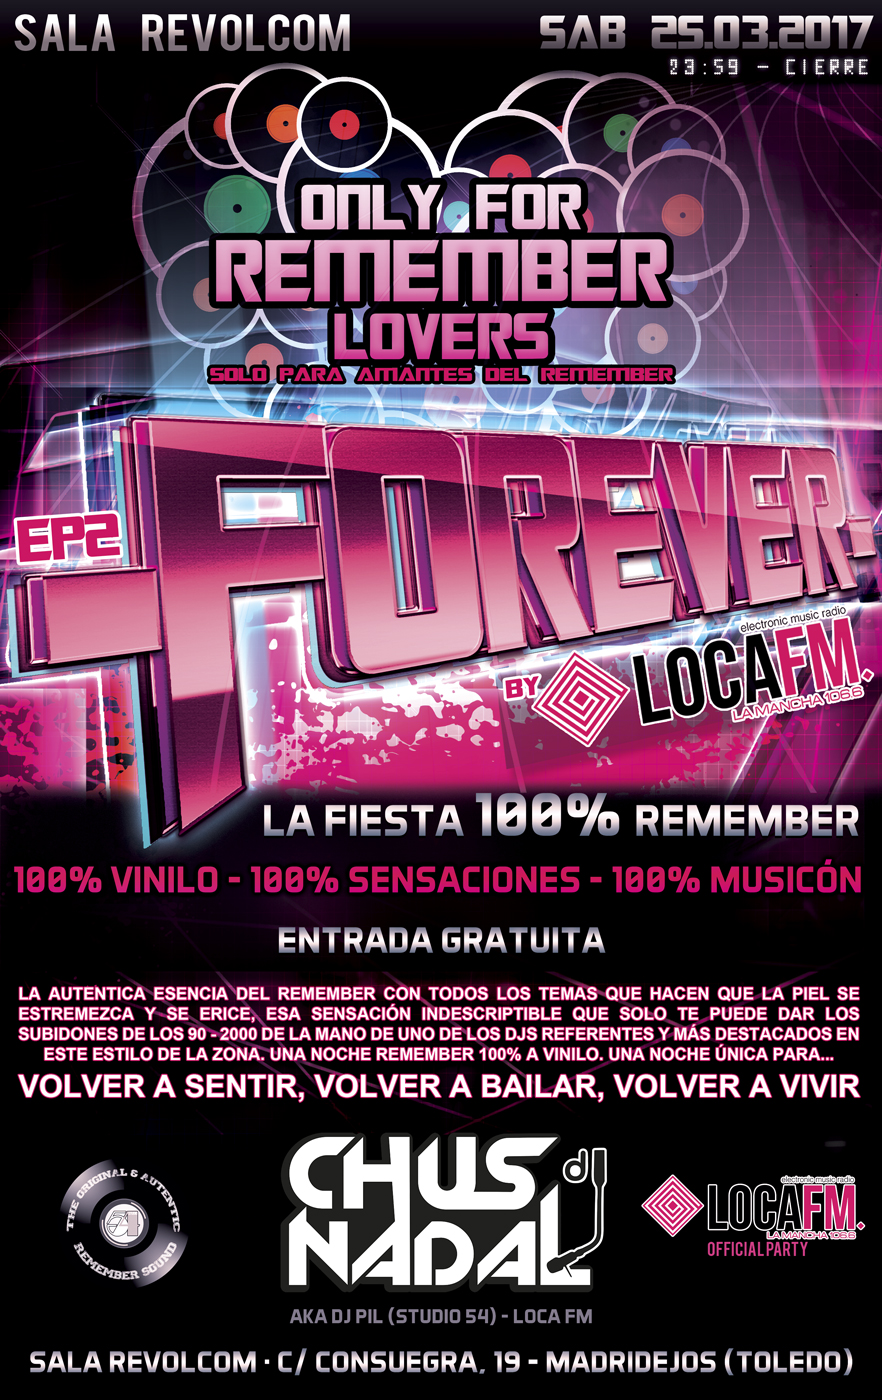 Forever fiesta remember by locafm